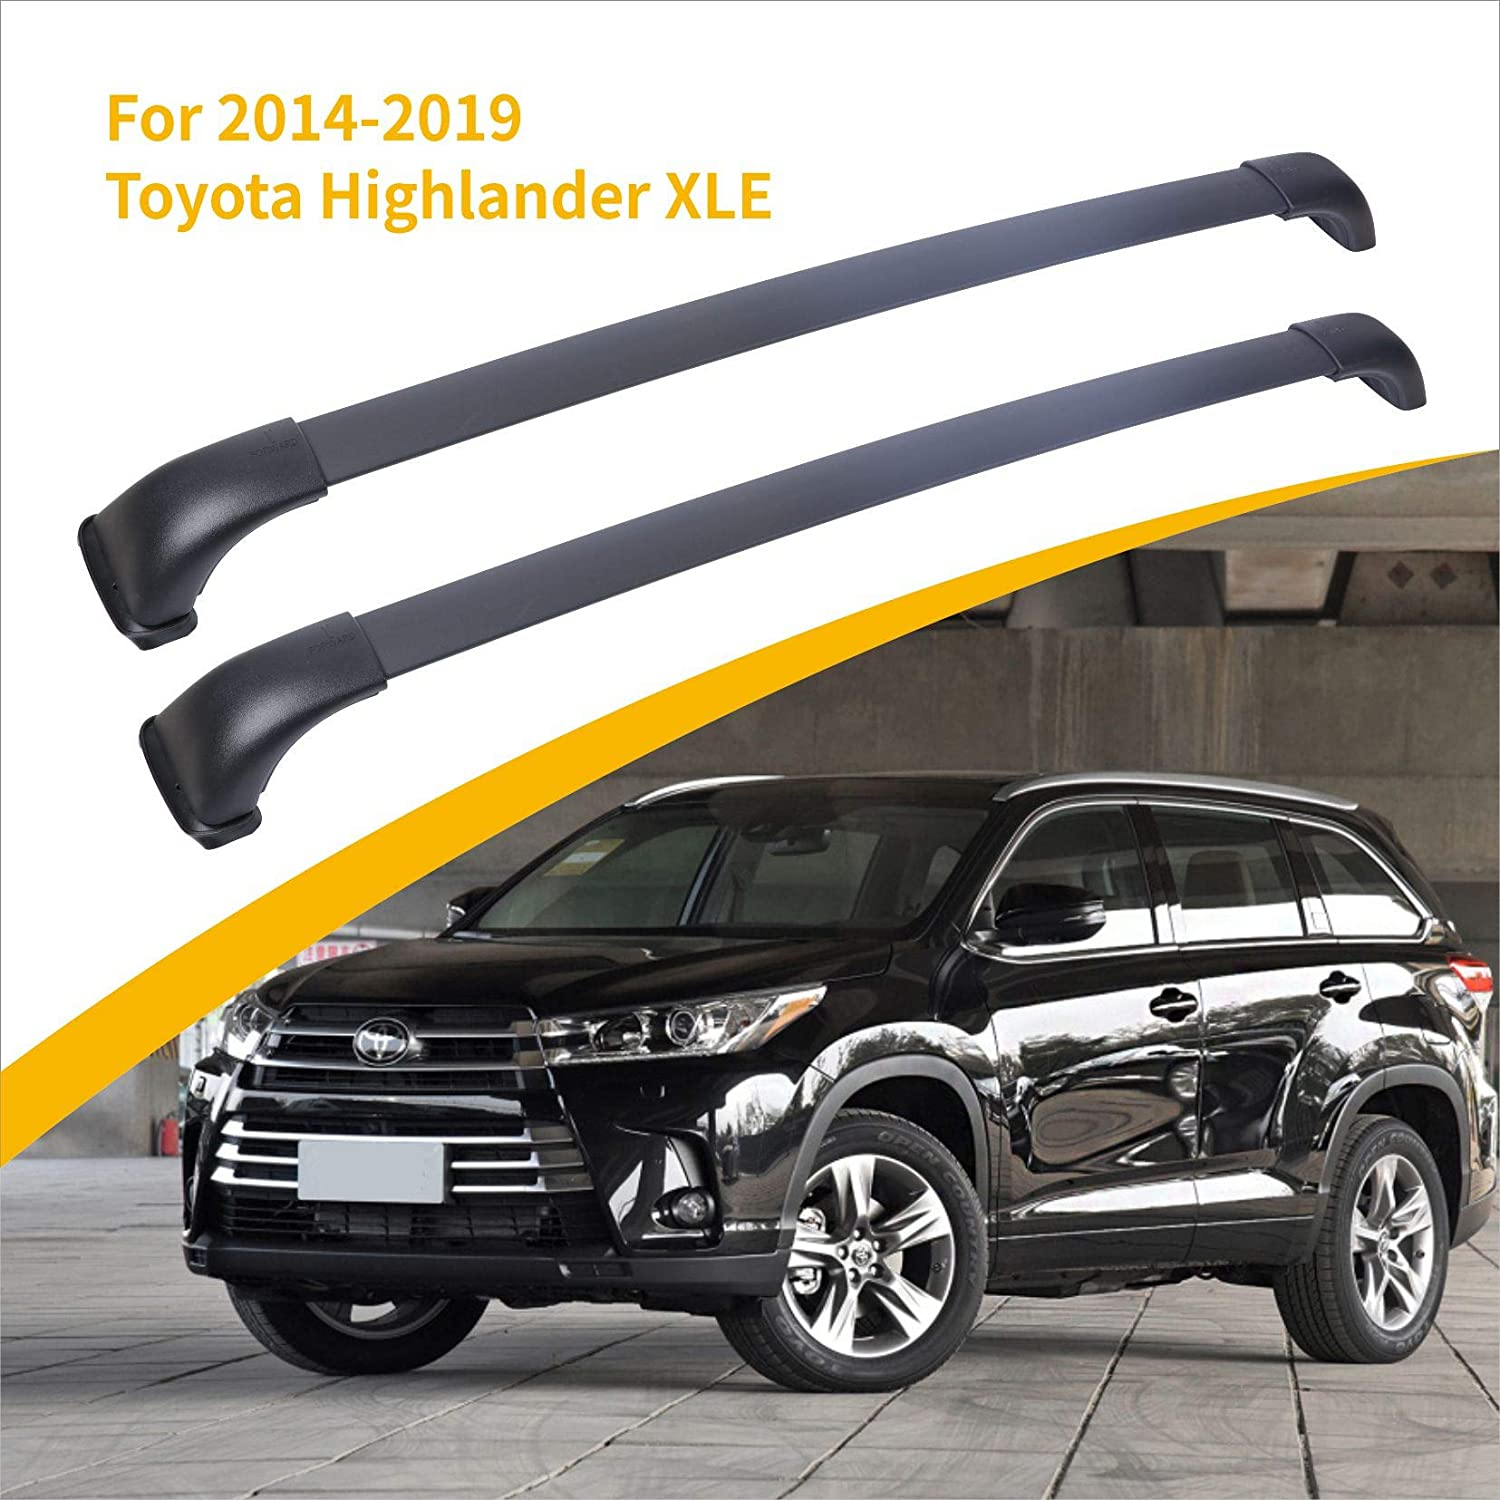 Roof Rack 5 ☆ very popular Challenge the lowest price of Japan ☆ Cross Bars Compatible 2014-2019 for Highlander Toyota